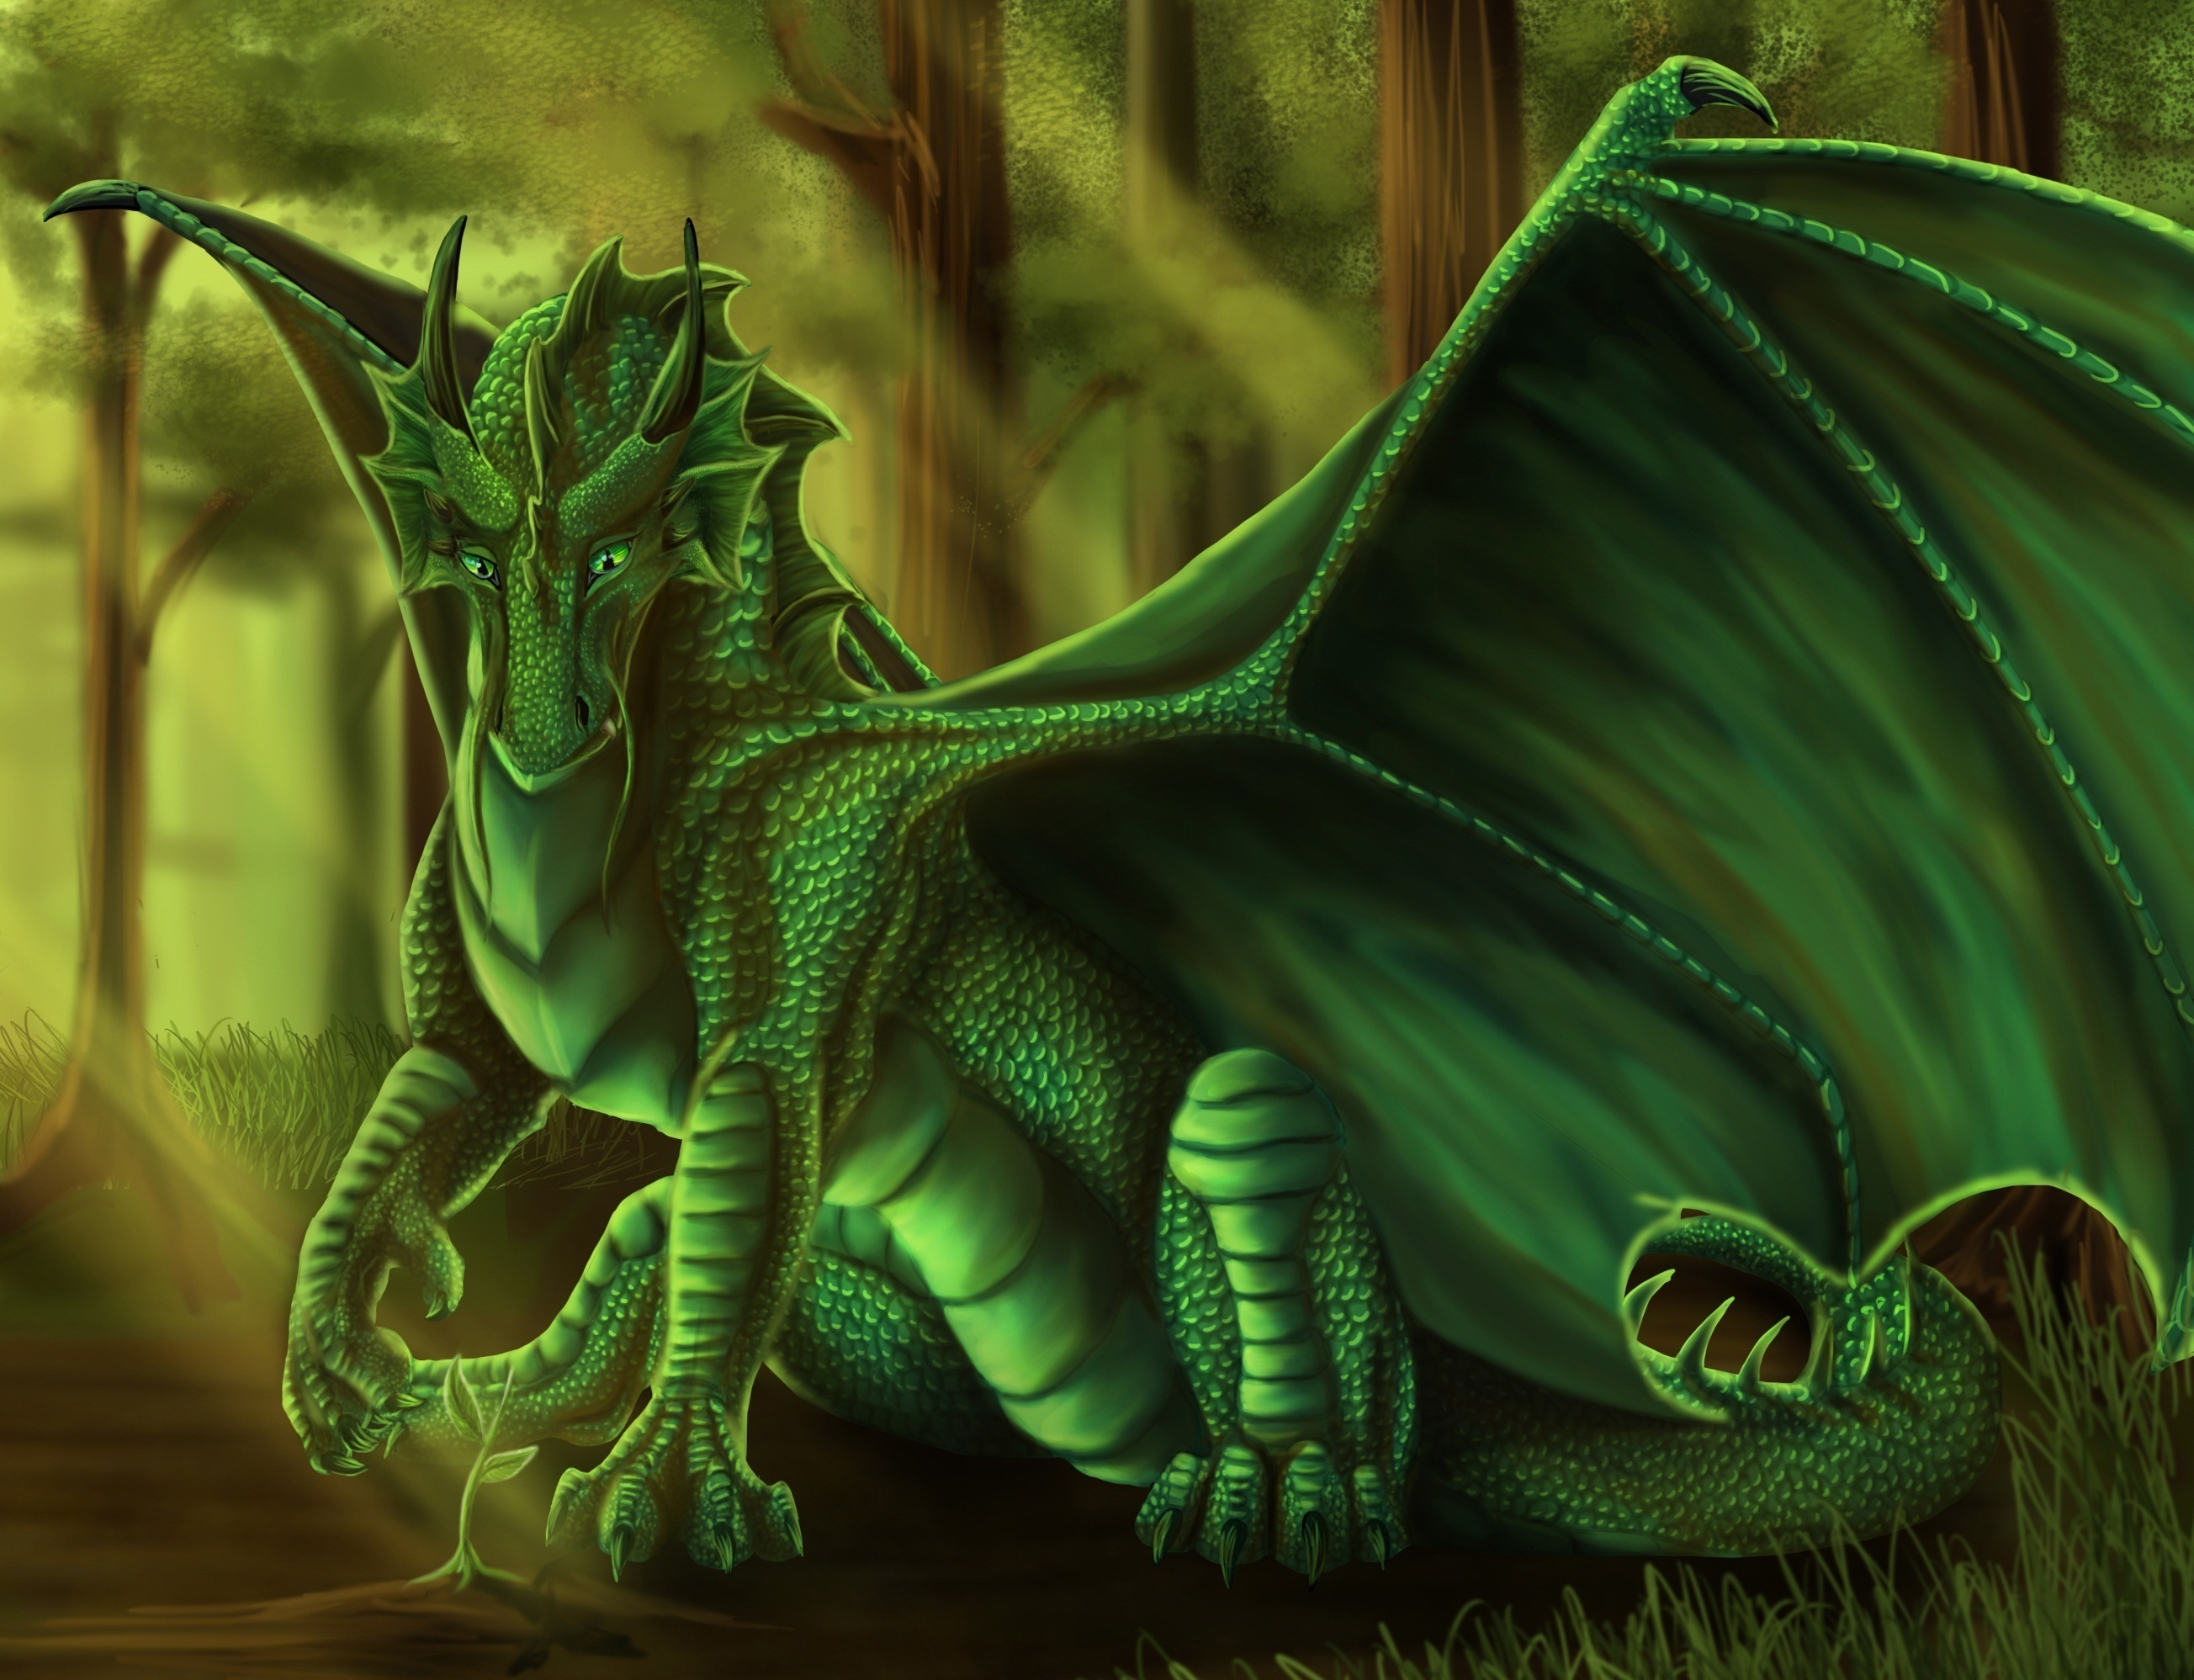 14842 download wallpaper Fantasy, Dragons screensavers and pictures for free